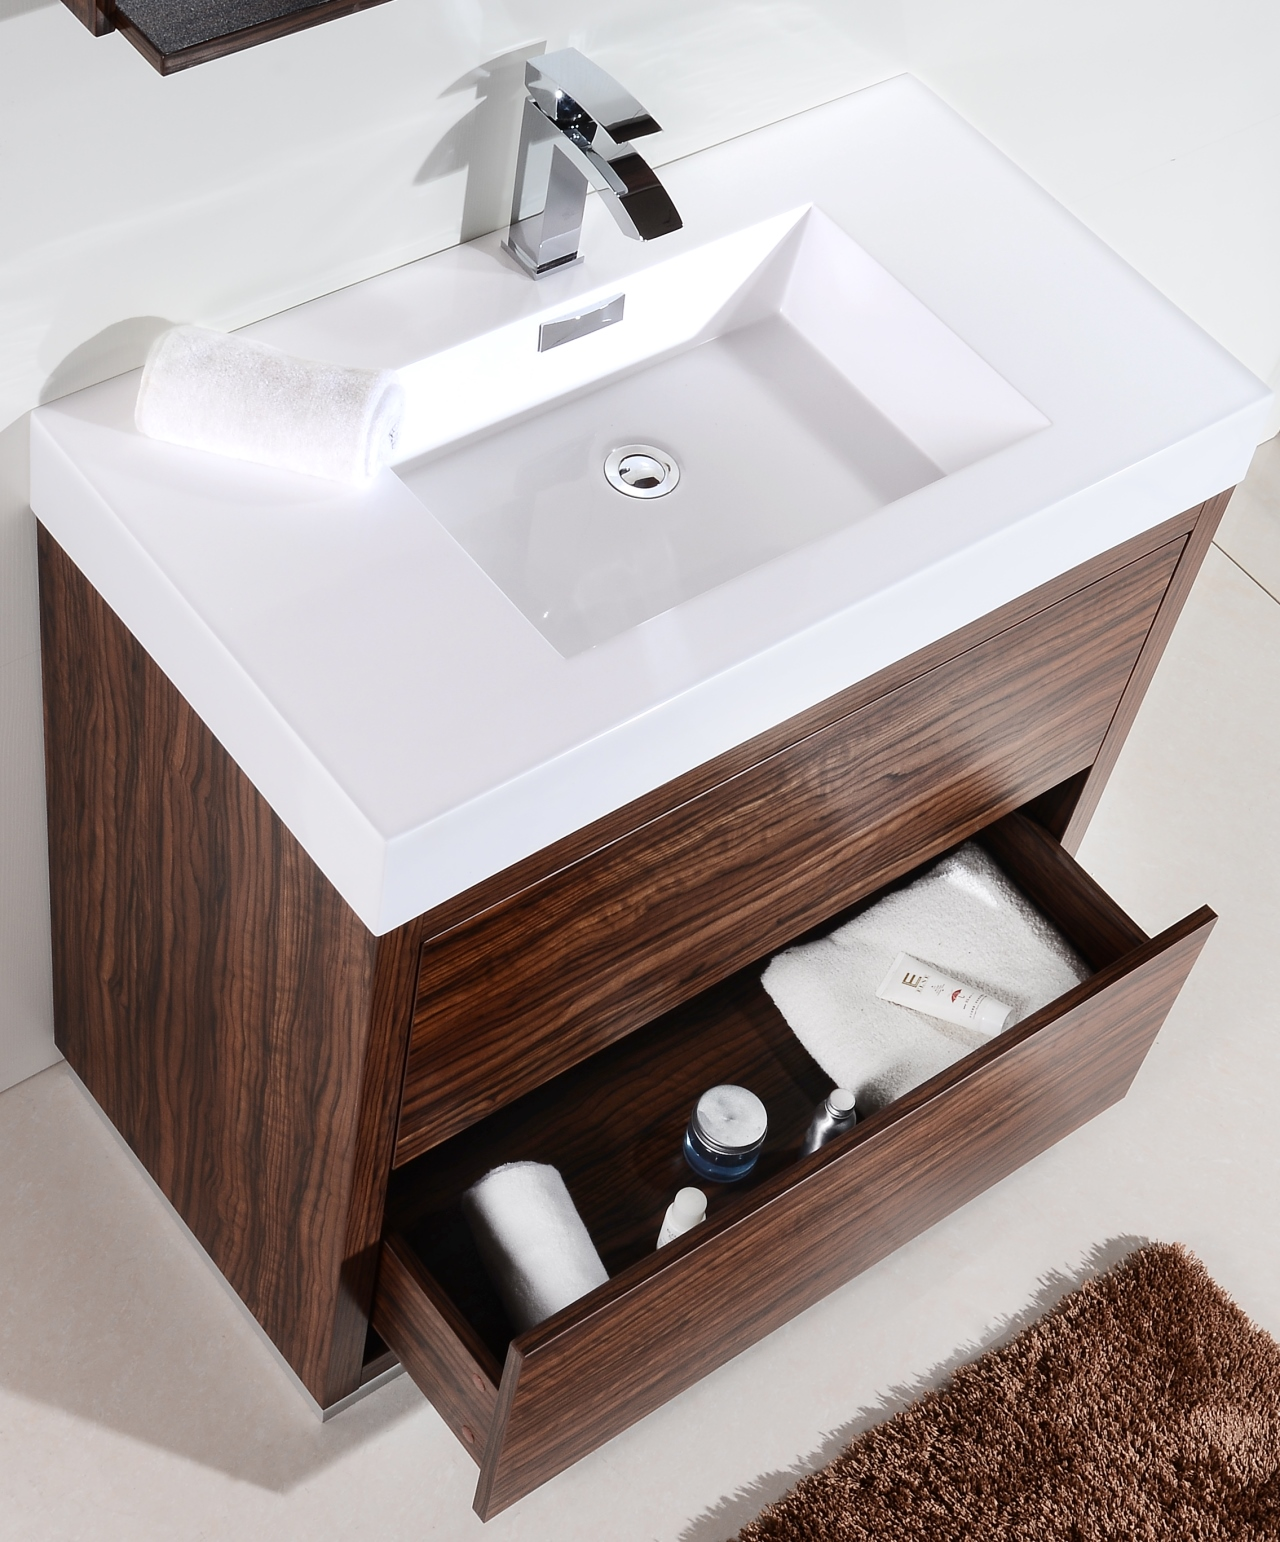 Bliss 40u2033 Walnut Free Standing Modern Bathroom Vanity Vanities, Bliss